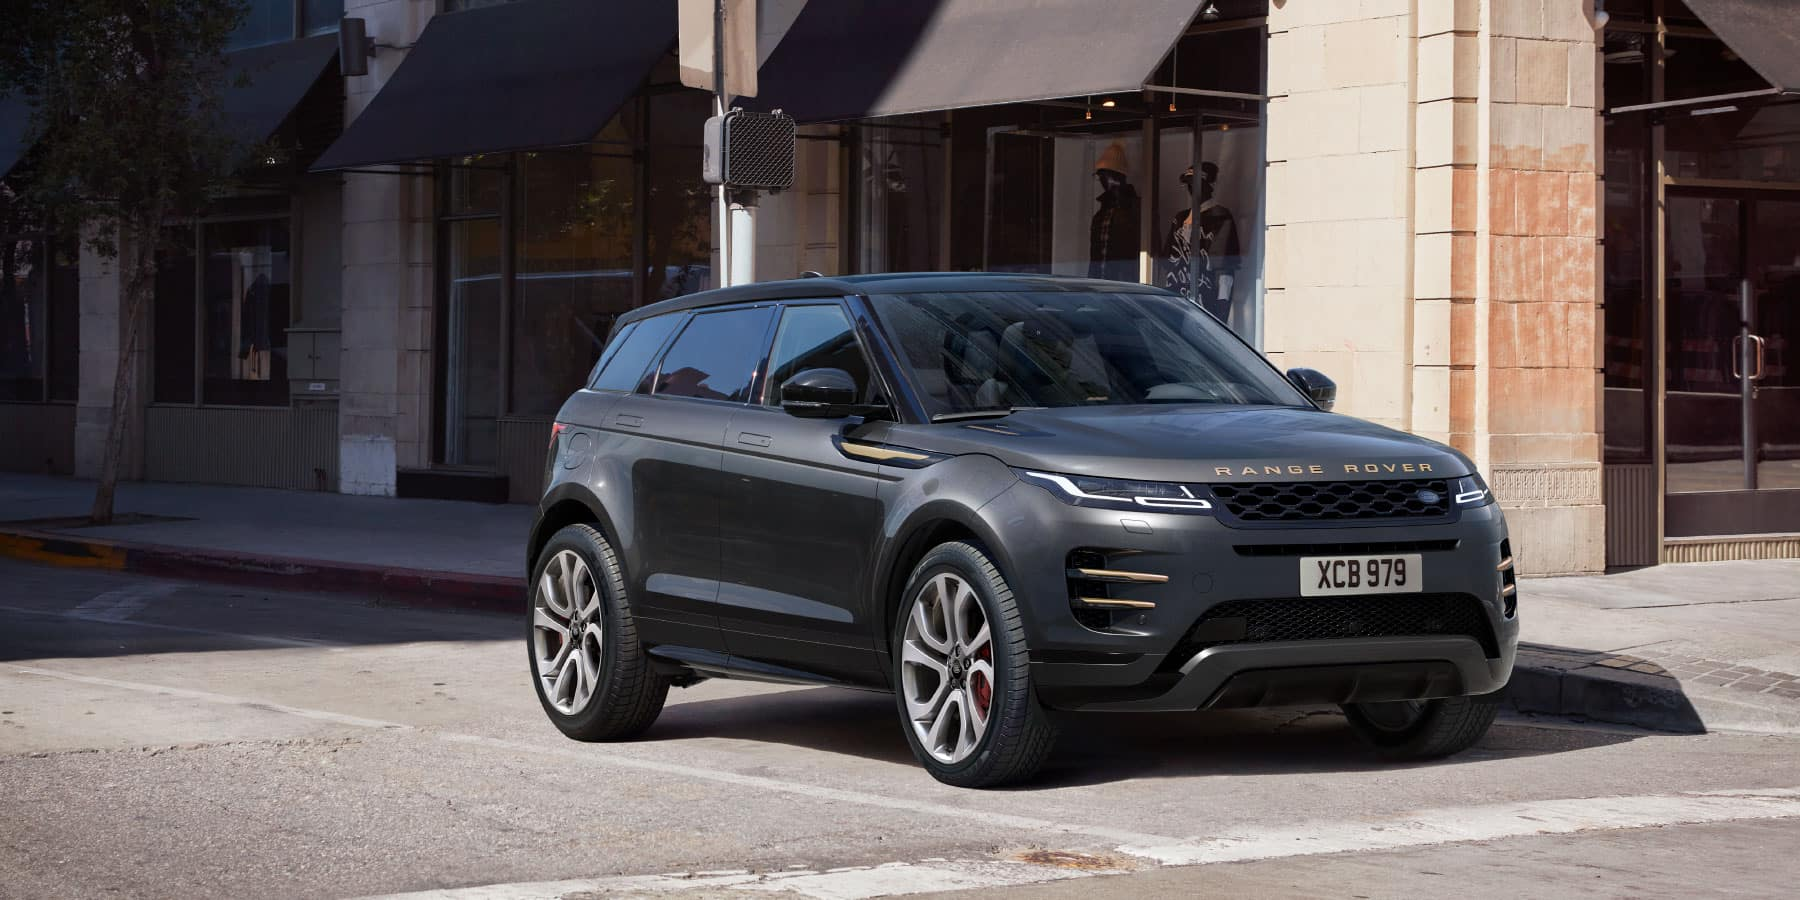 Autobahn Land Rover Fort Worth | Excellent Selection of 2020 and 2021 Range Rover Evoque Models